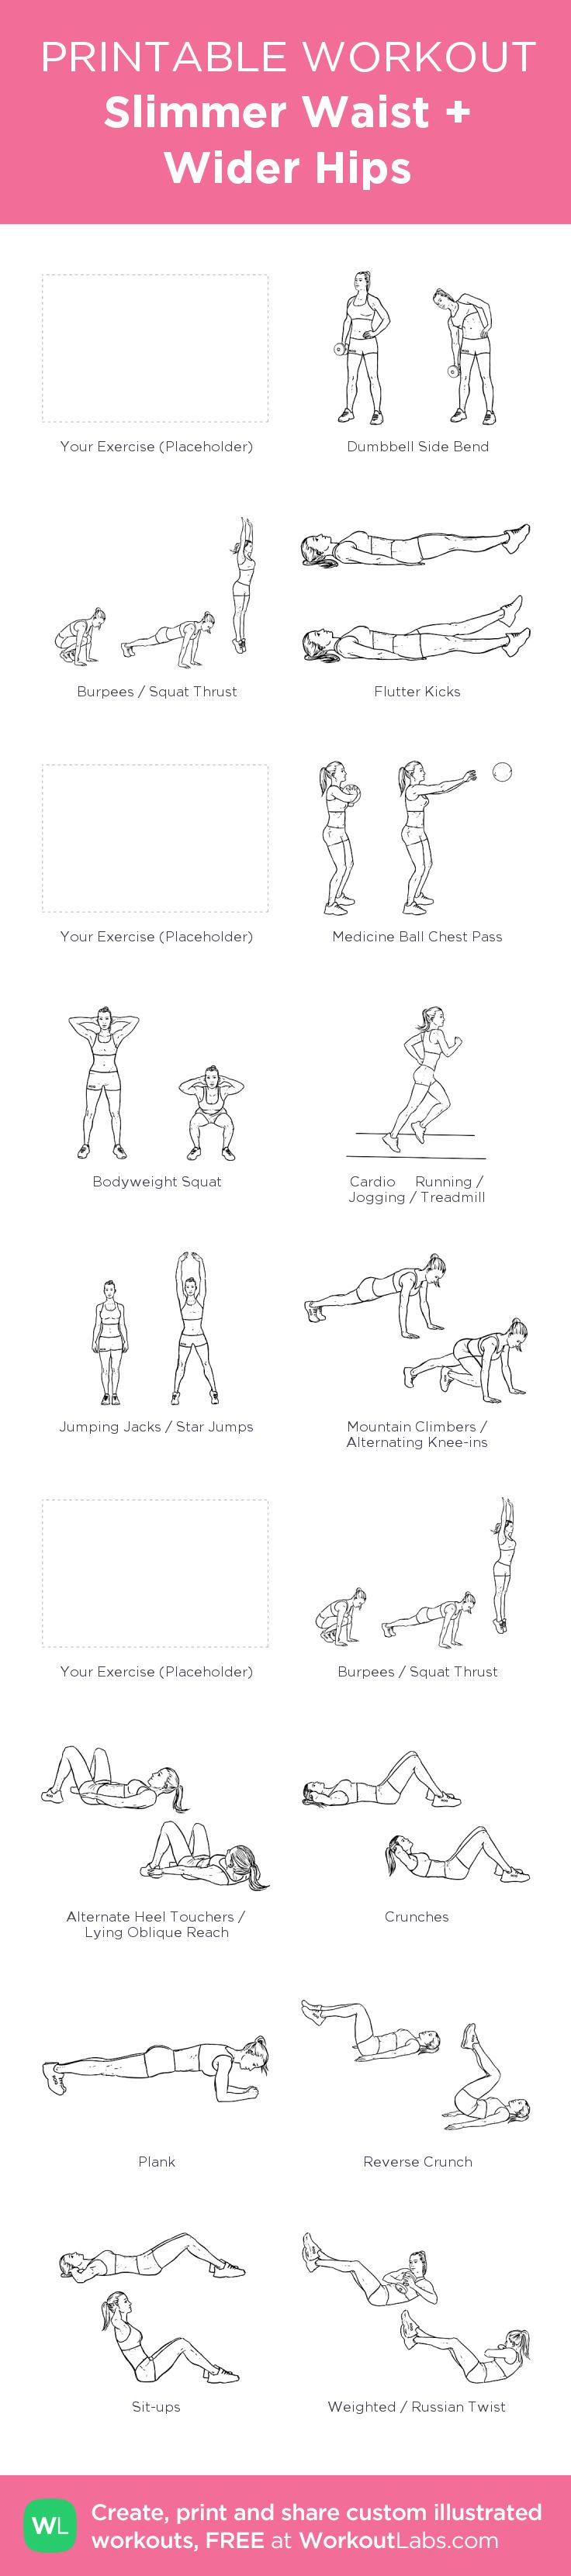 Slimmer Waist + Wider Hips: my visual workout created at WorkoutLabs.com • Click through to customize and download as a FREE PDF! #customworkout